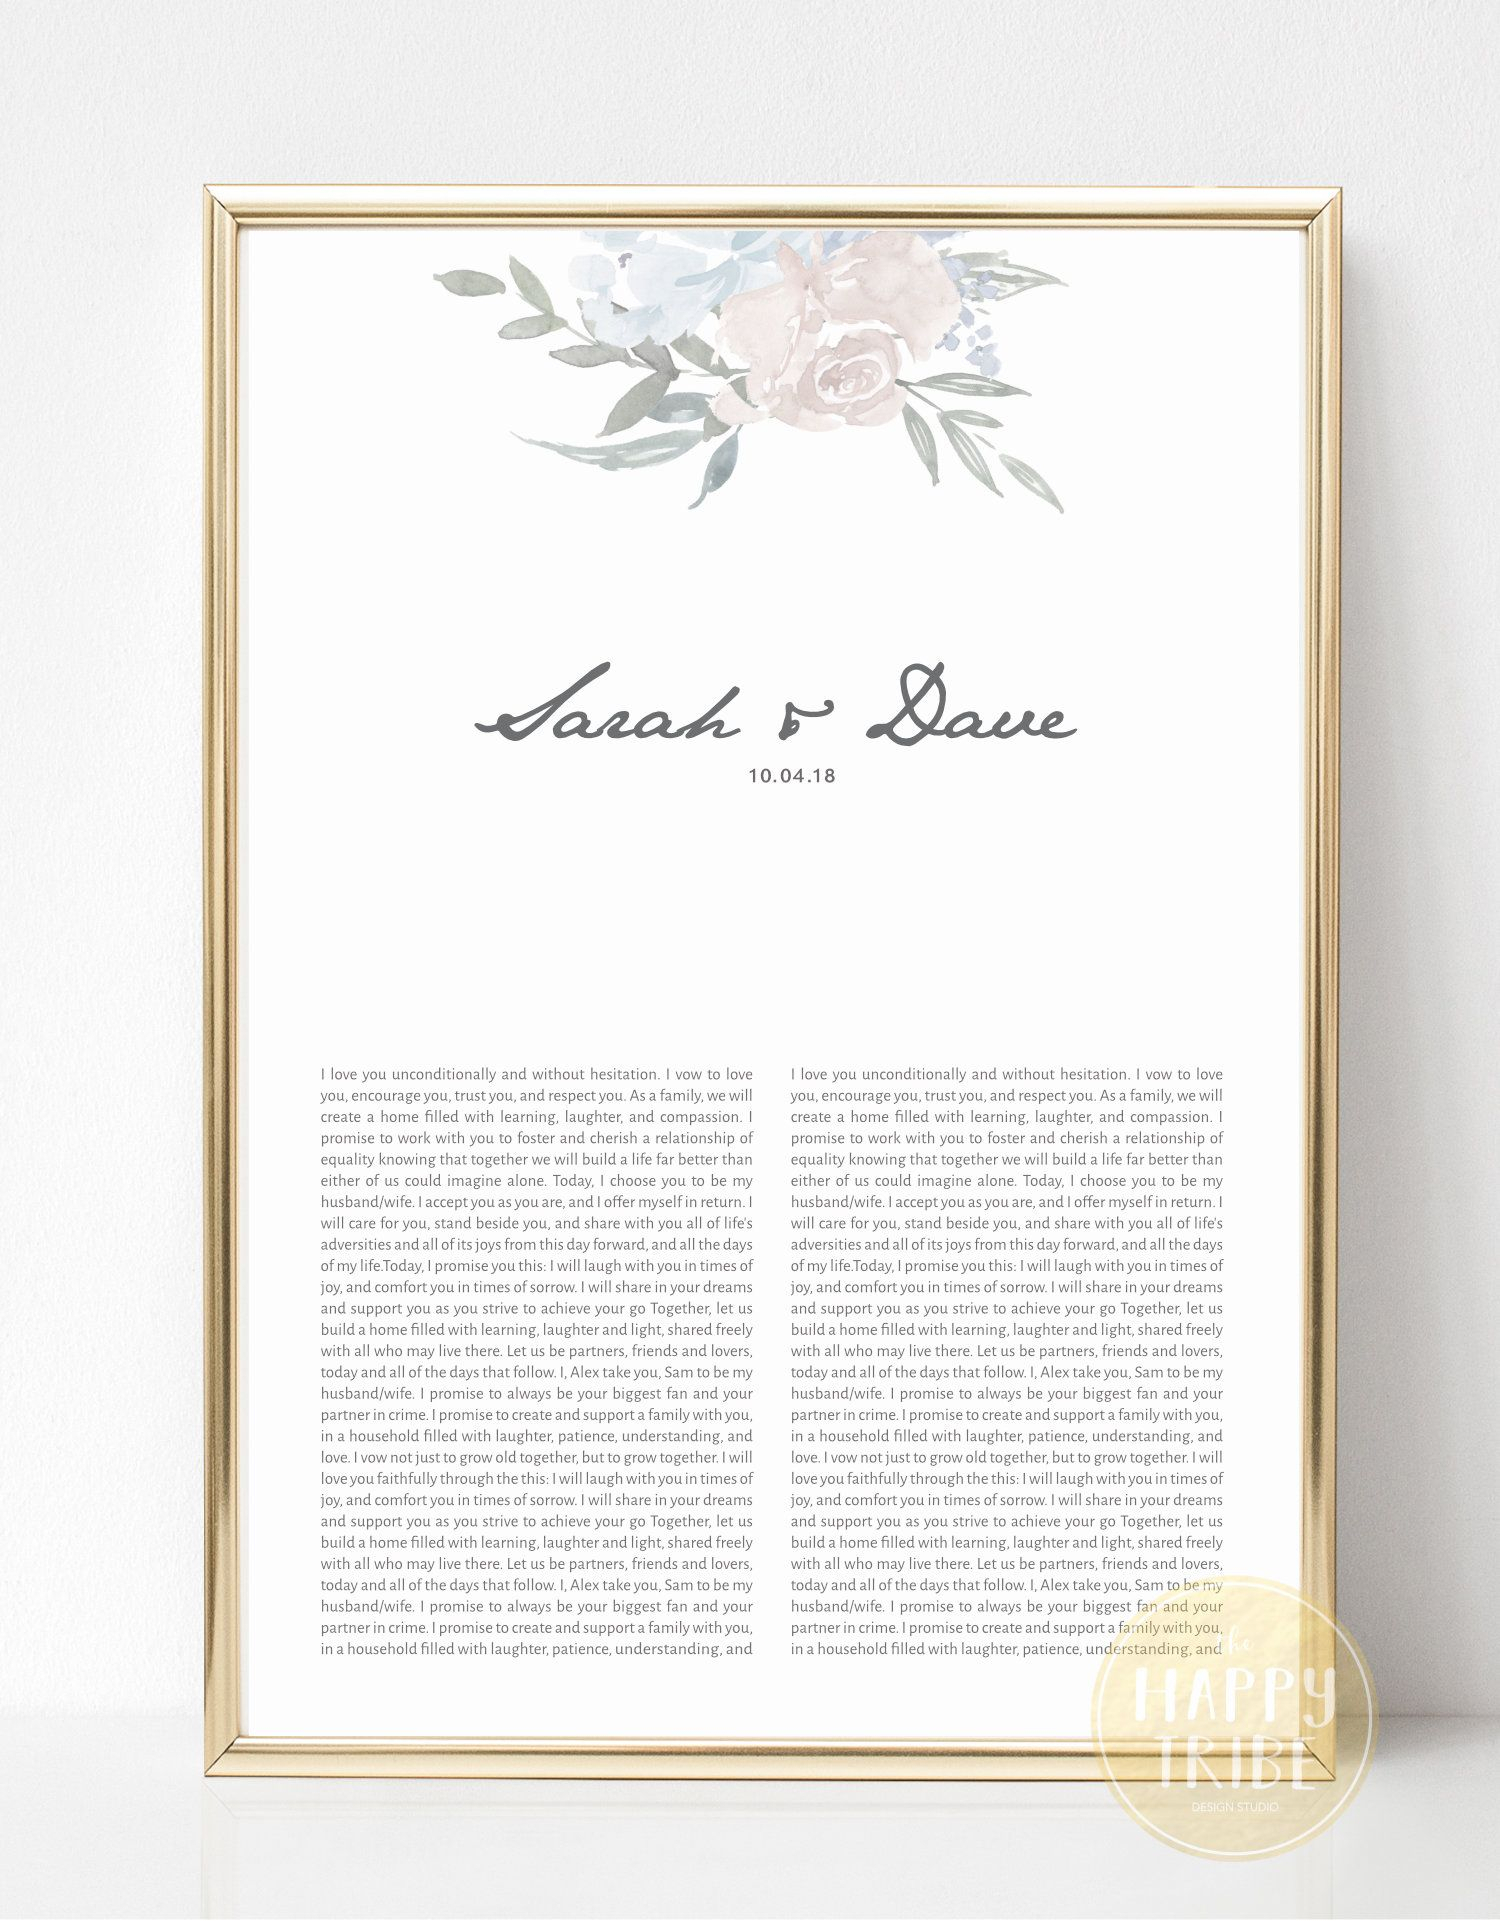 10 Most Recommended Valentines Day Ideas For Newlyweds marriage vows keepsake print for anniversaries newlyweds gift 2020